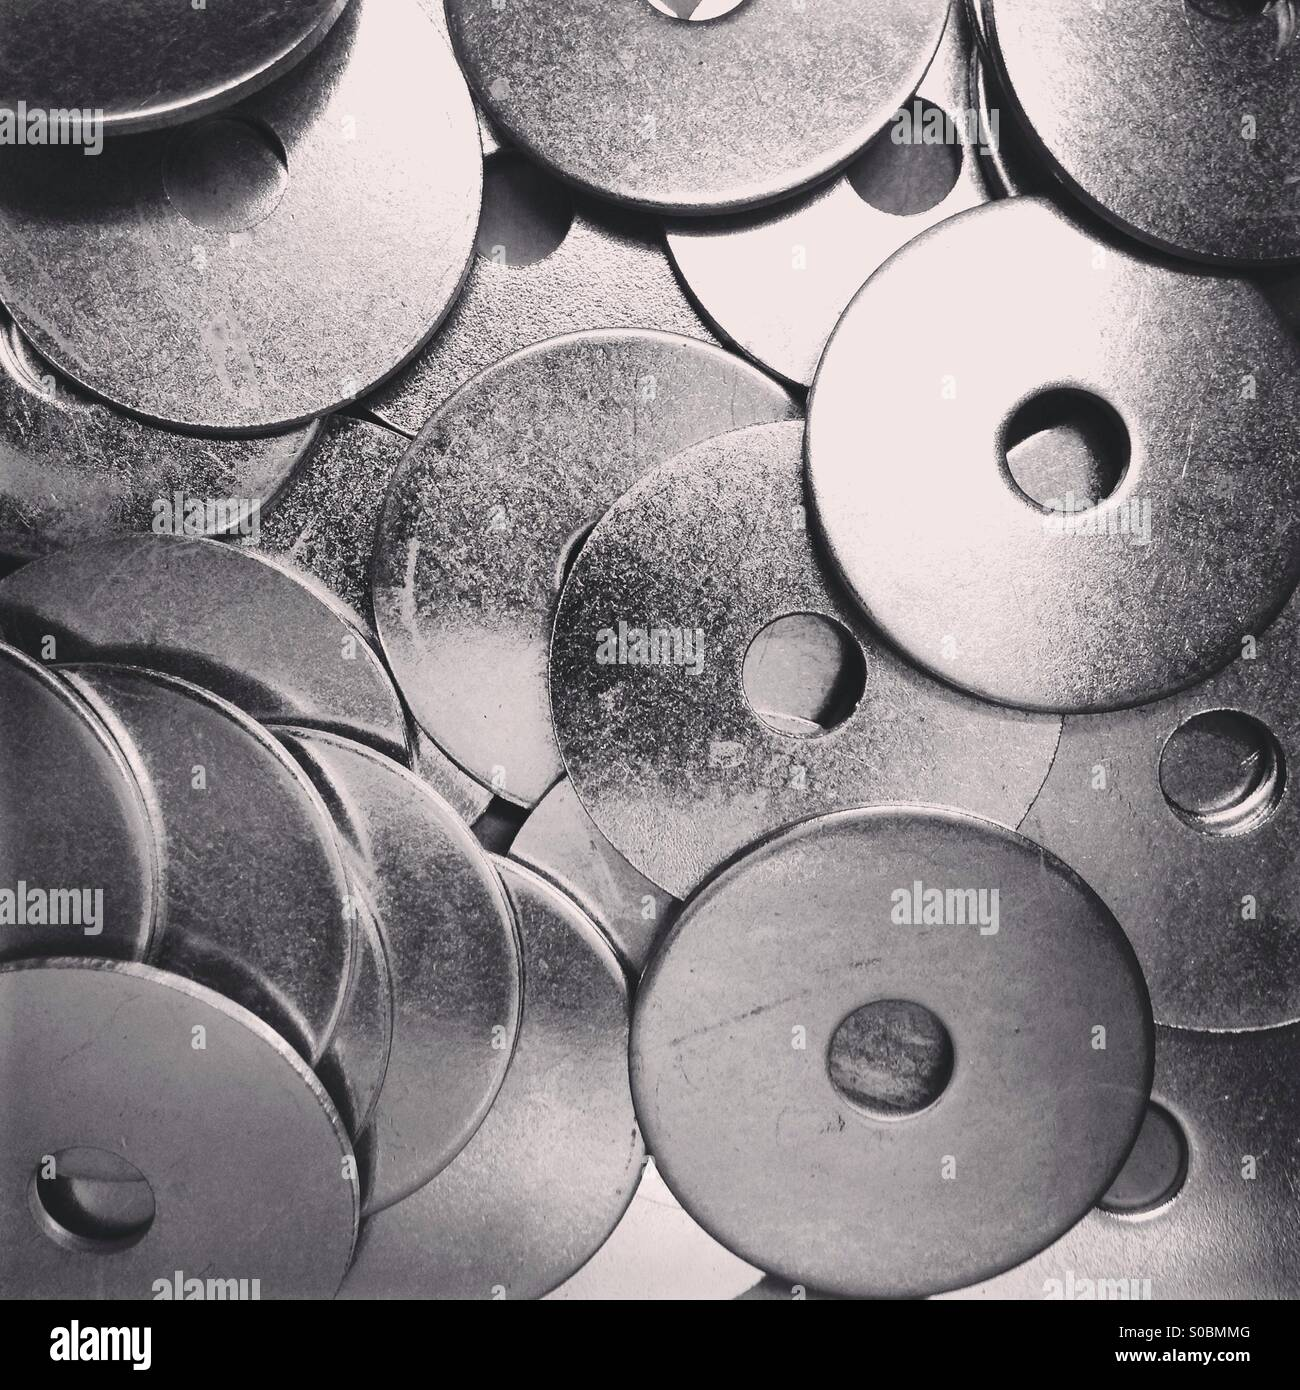 Steel washers one inch - Stock Image